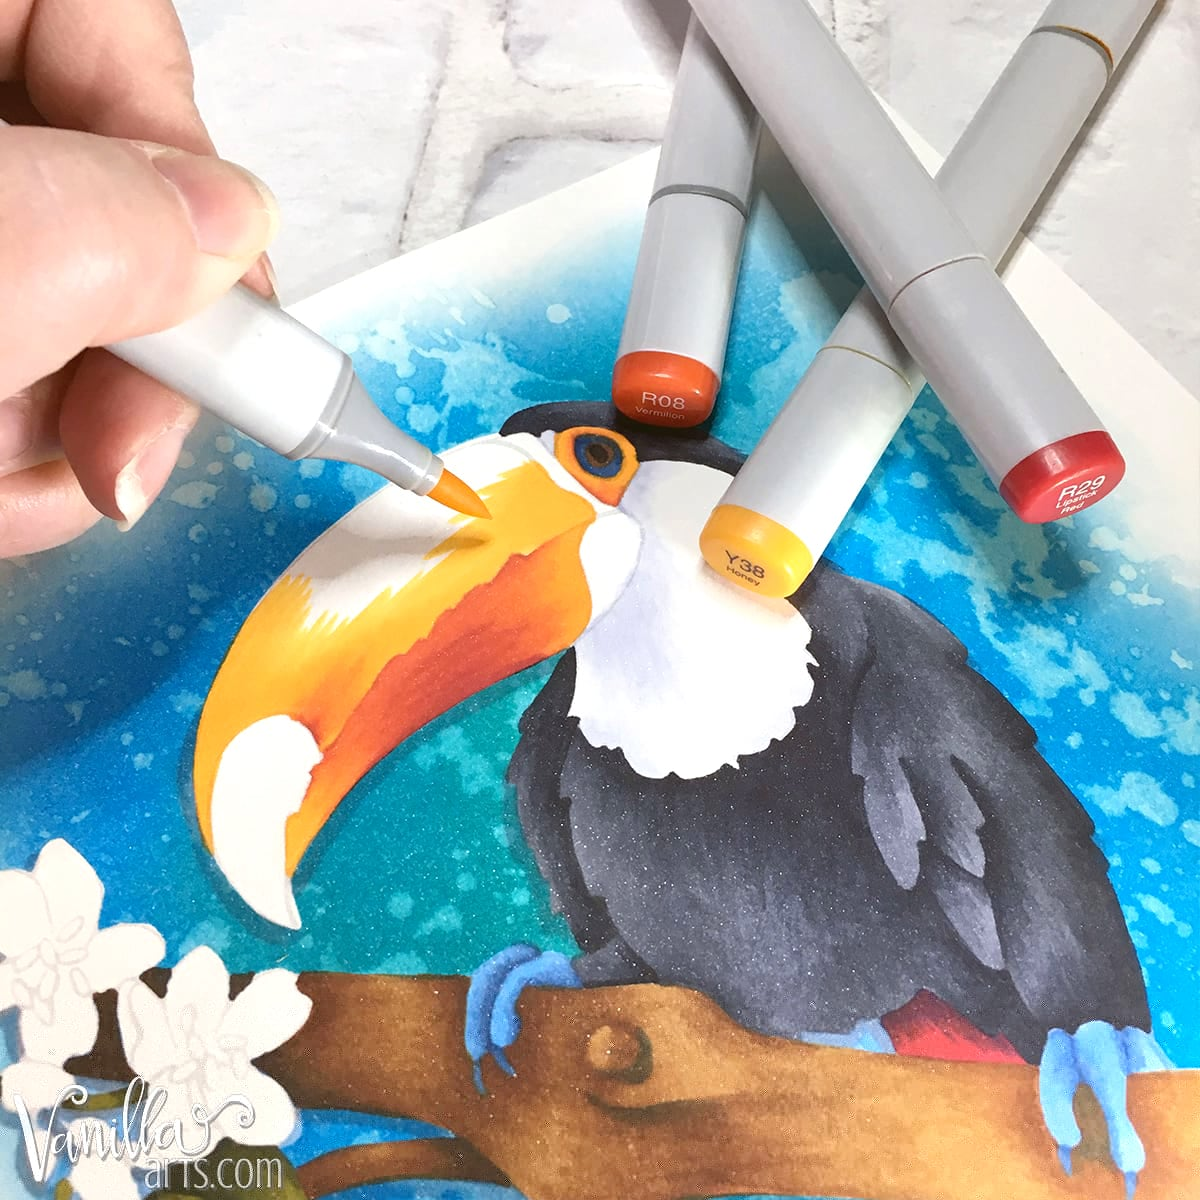 Copic Marker blending tips: Don't use friction. Every area gets an even and generous coat of ink, then I step back and let the inks blend on their own.